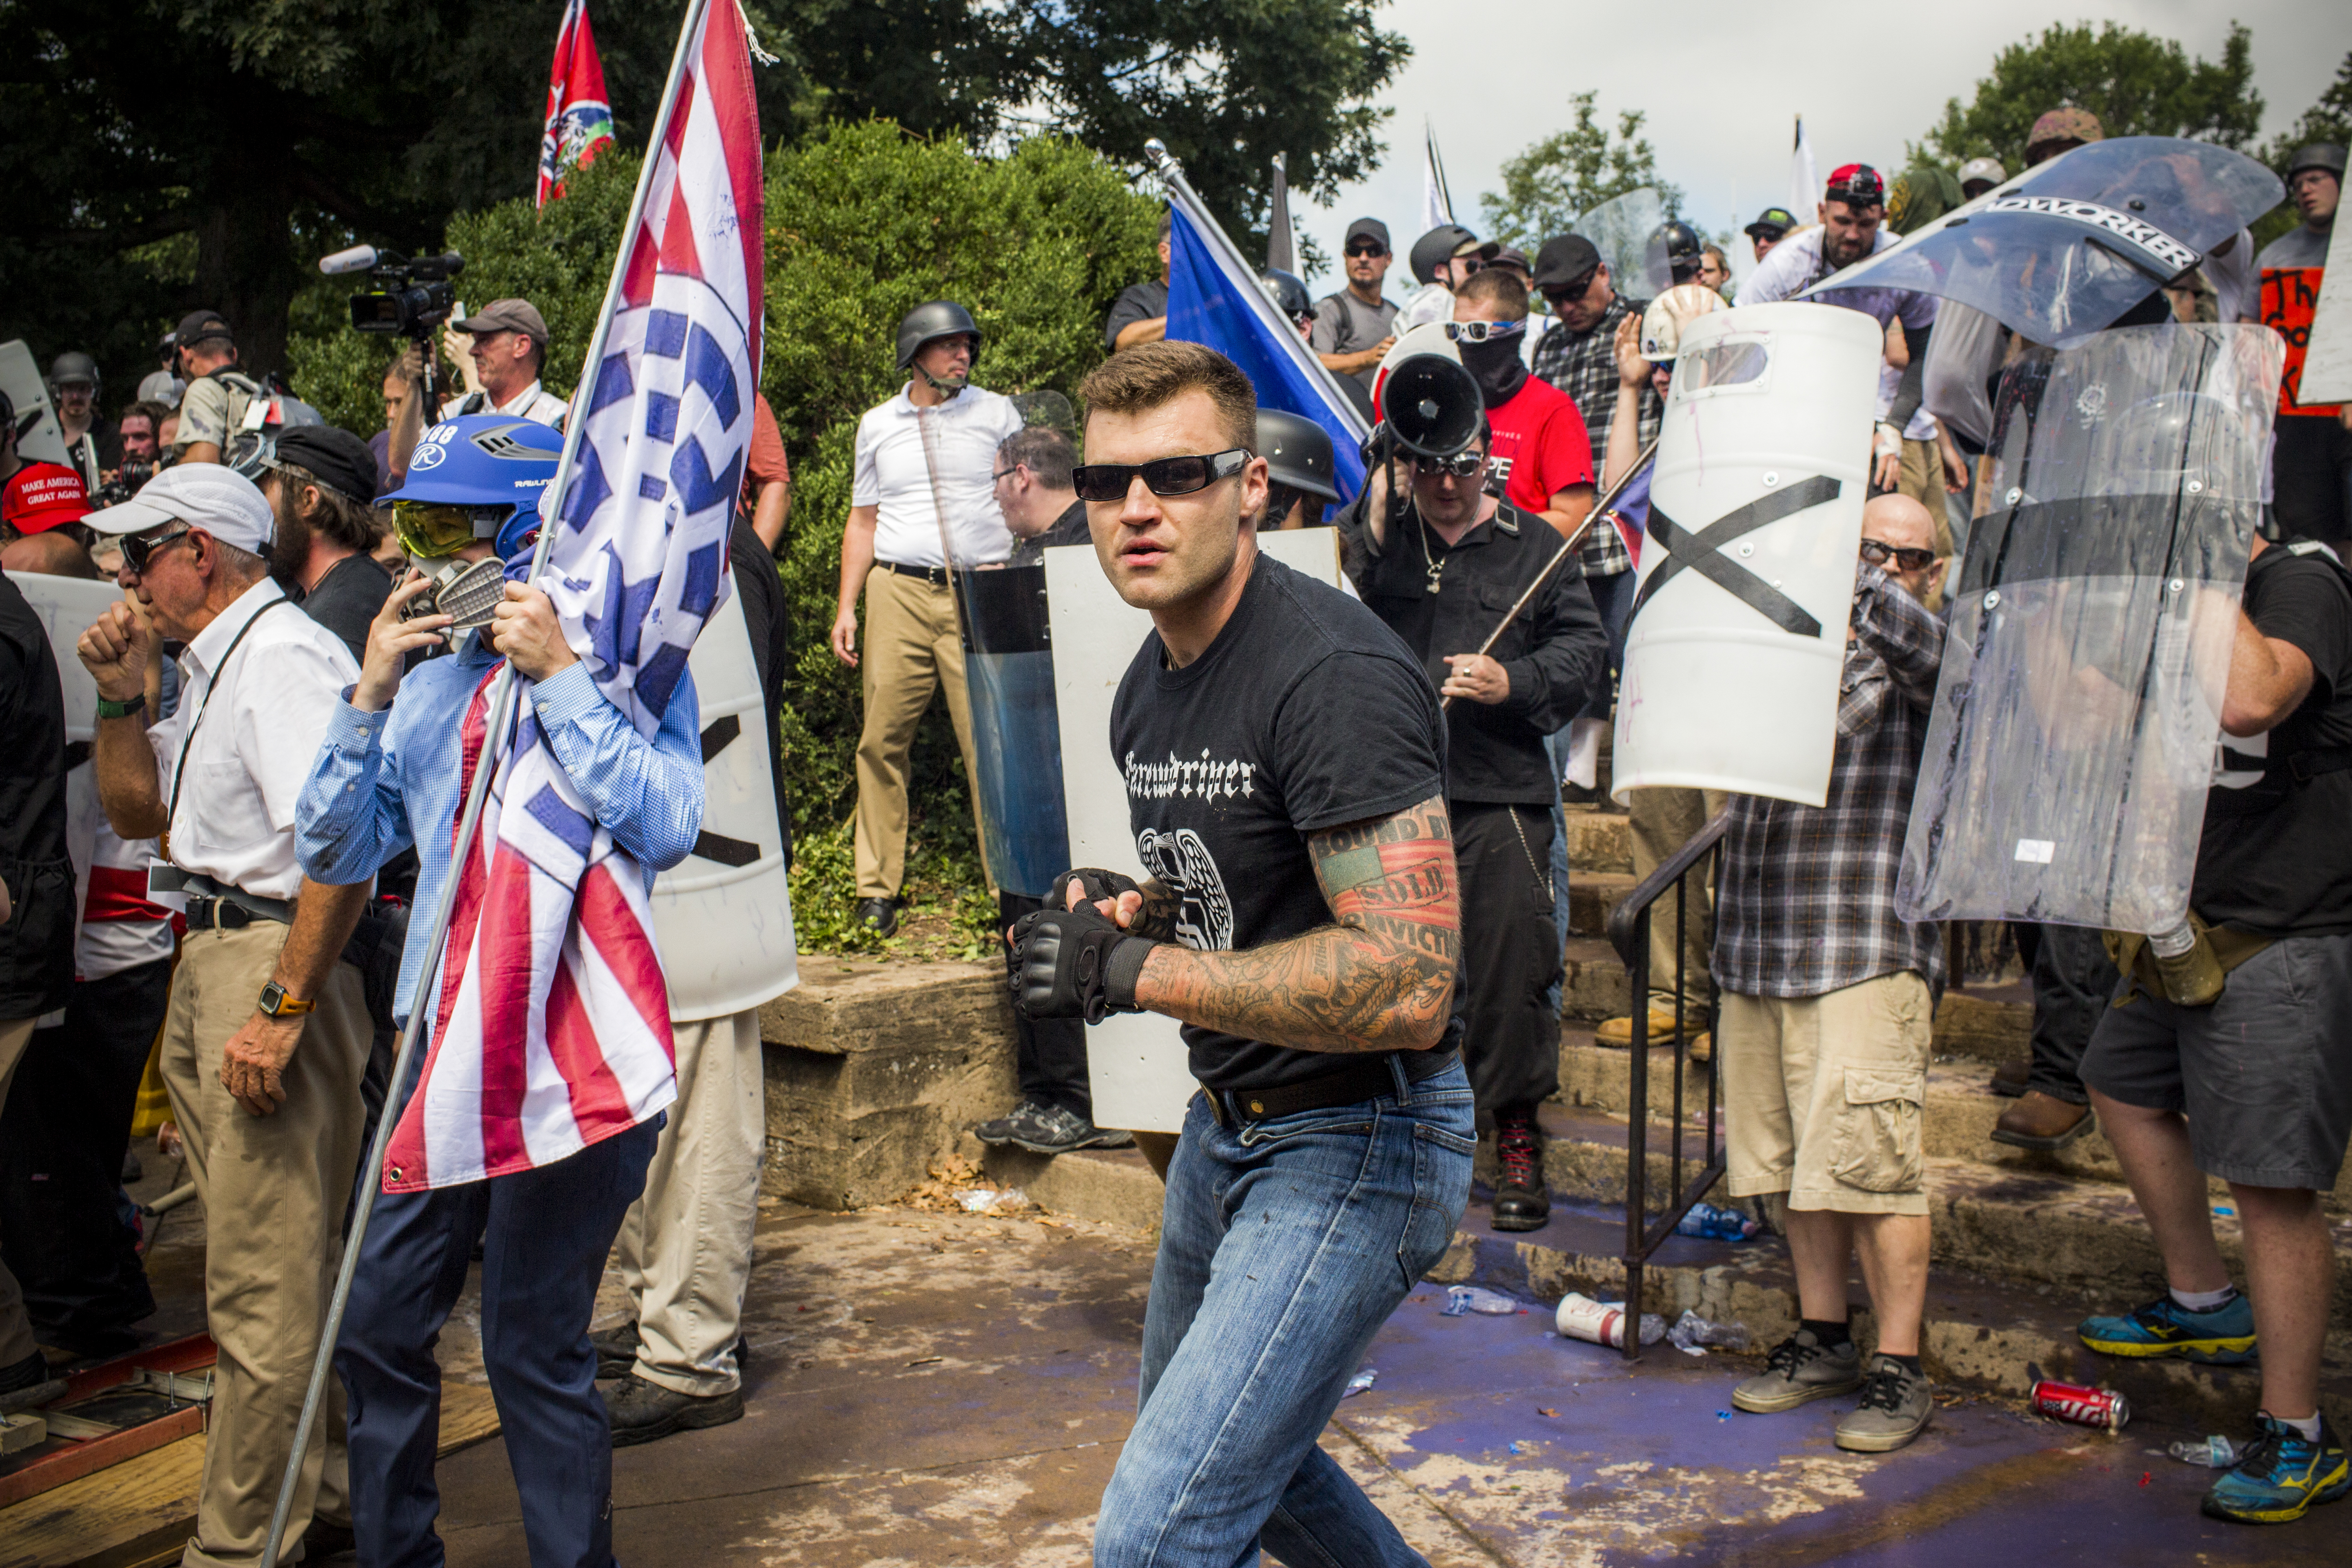 """White nationalists stand ready to fight ANTIFA and other protestors at the steps of Emancipation park during the """"Unite the Right Rally"""" in Charlottesville, Virginia, on August 12, 2017."""